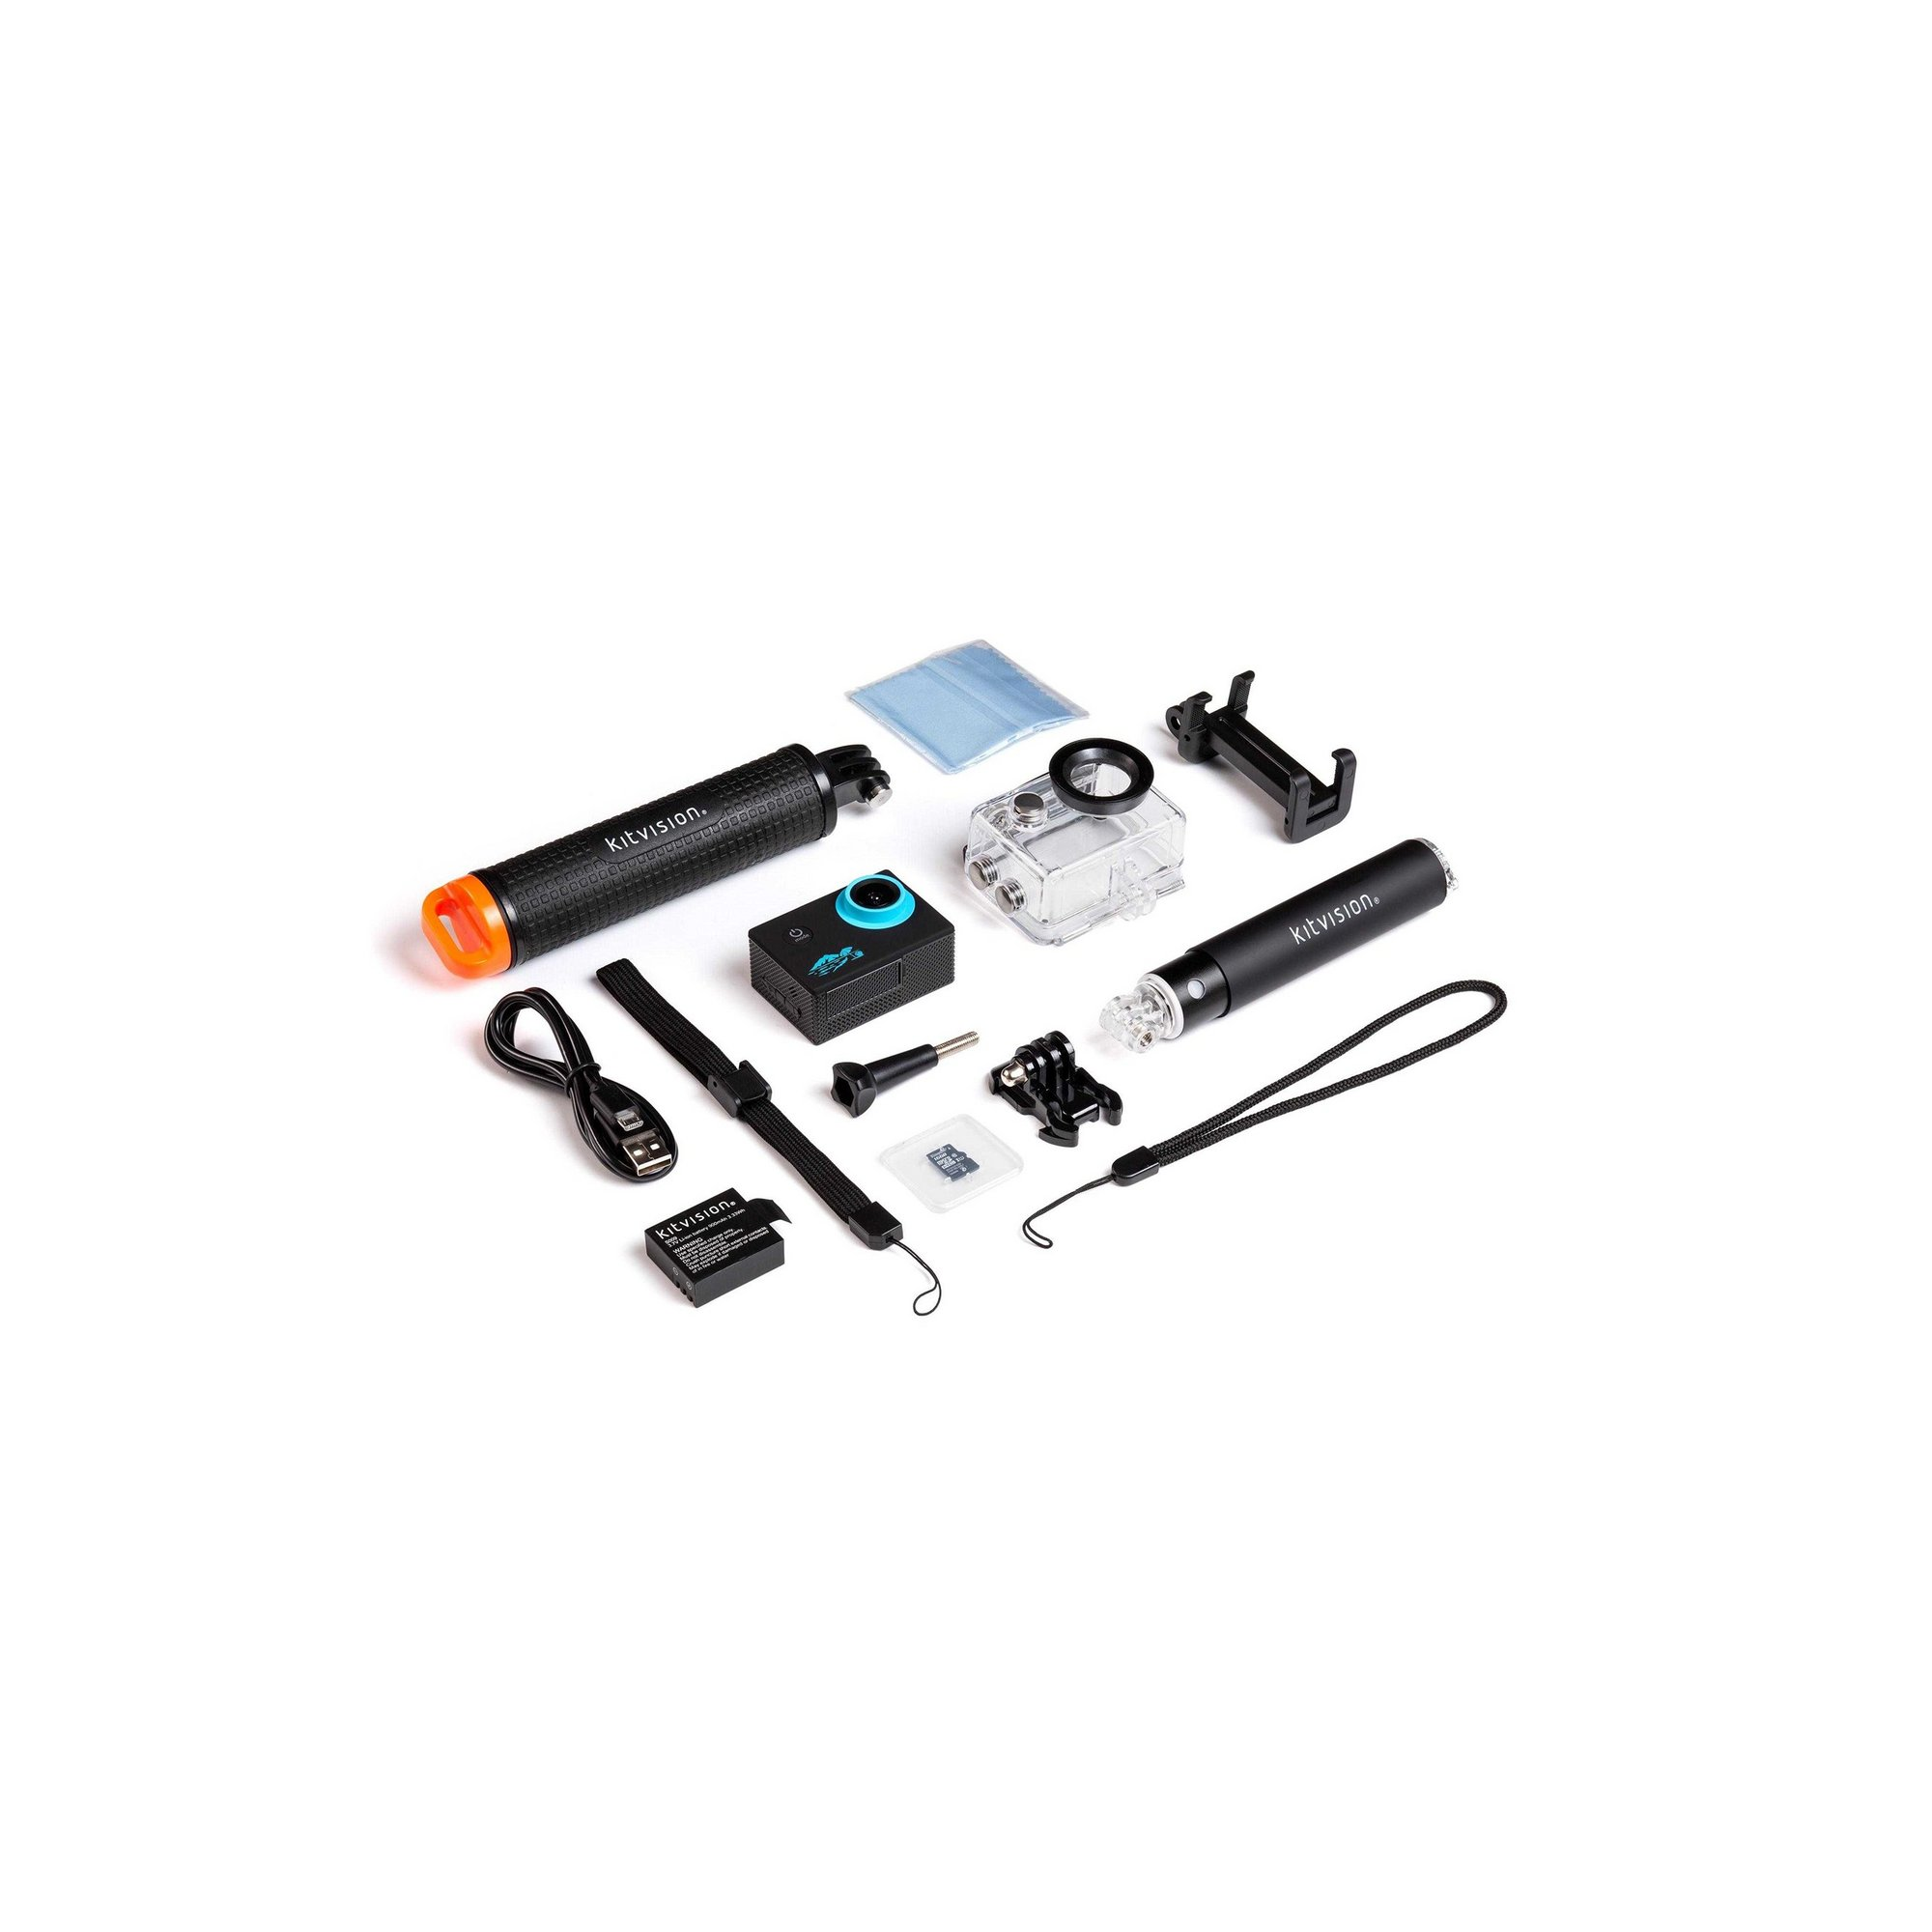 Image of KitVision Adventure Pack with Action Camera and Accessories